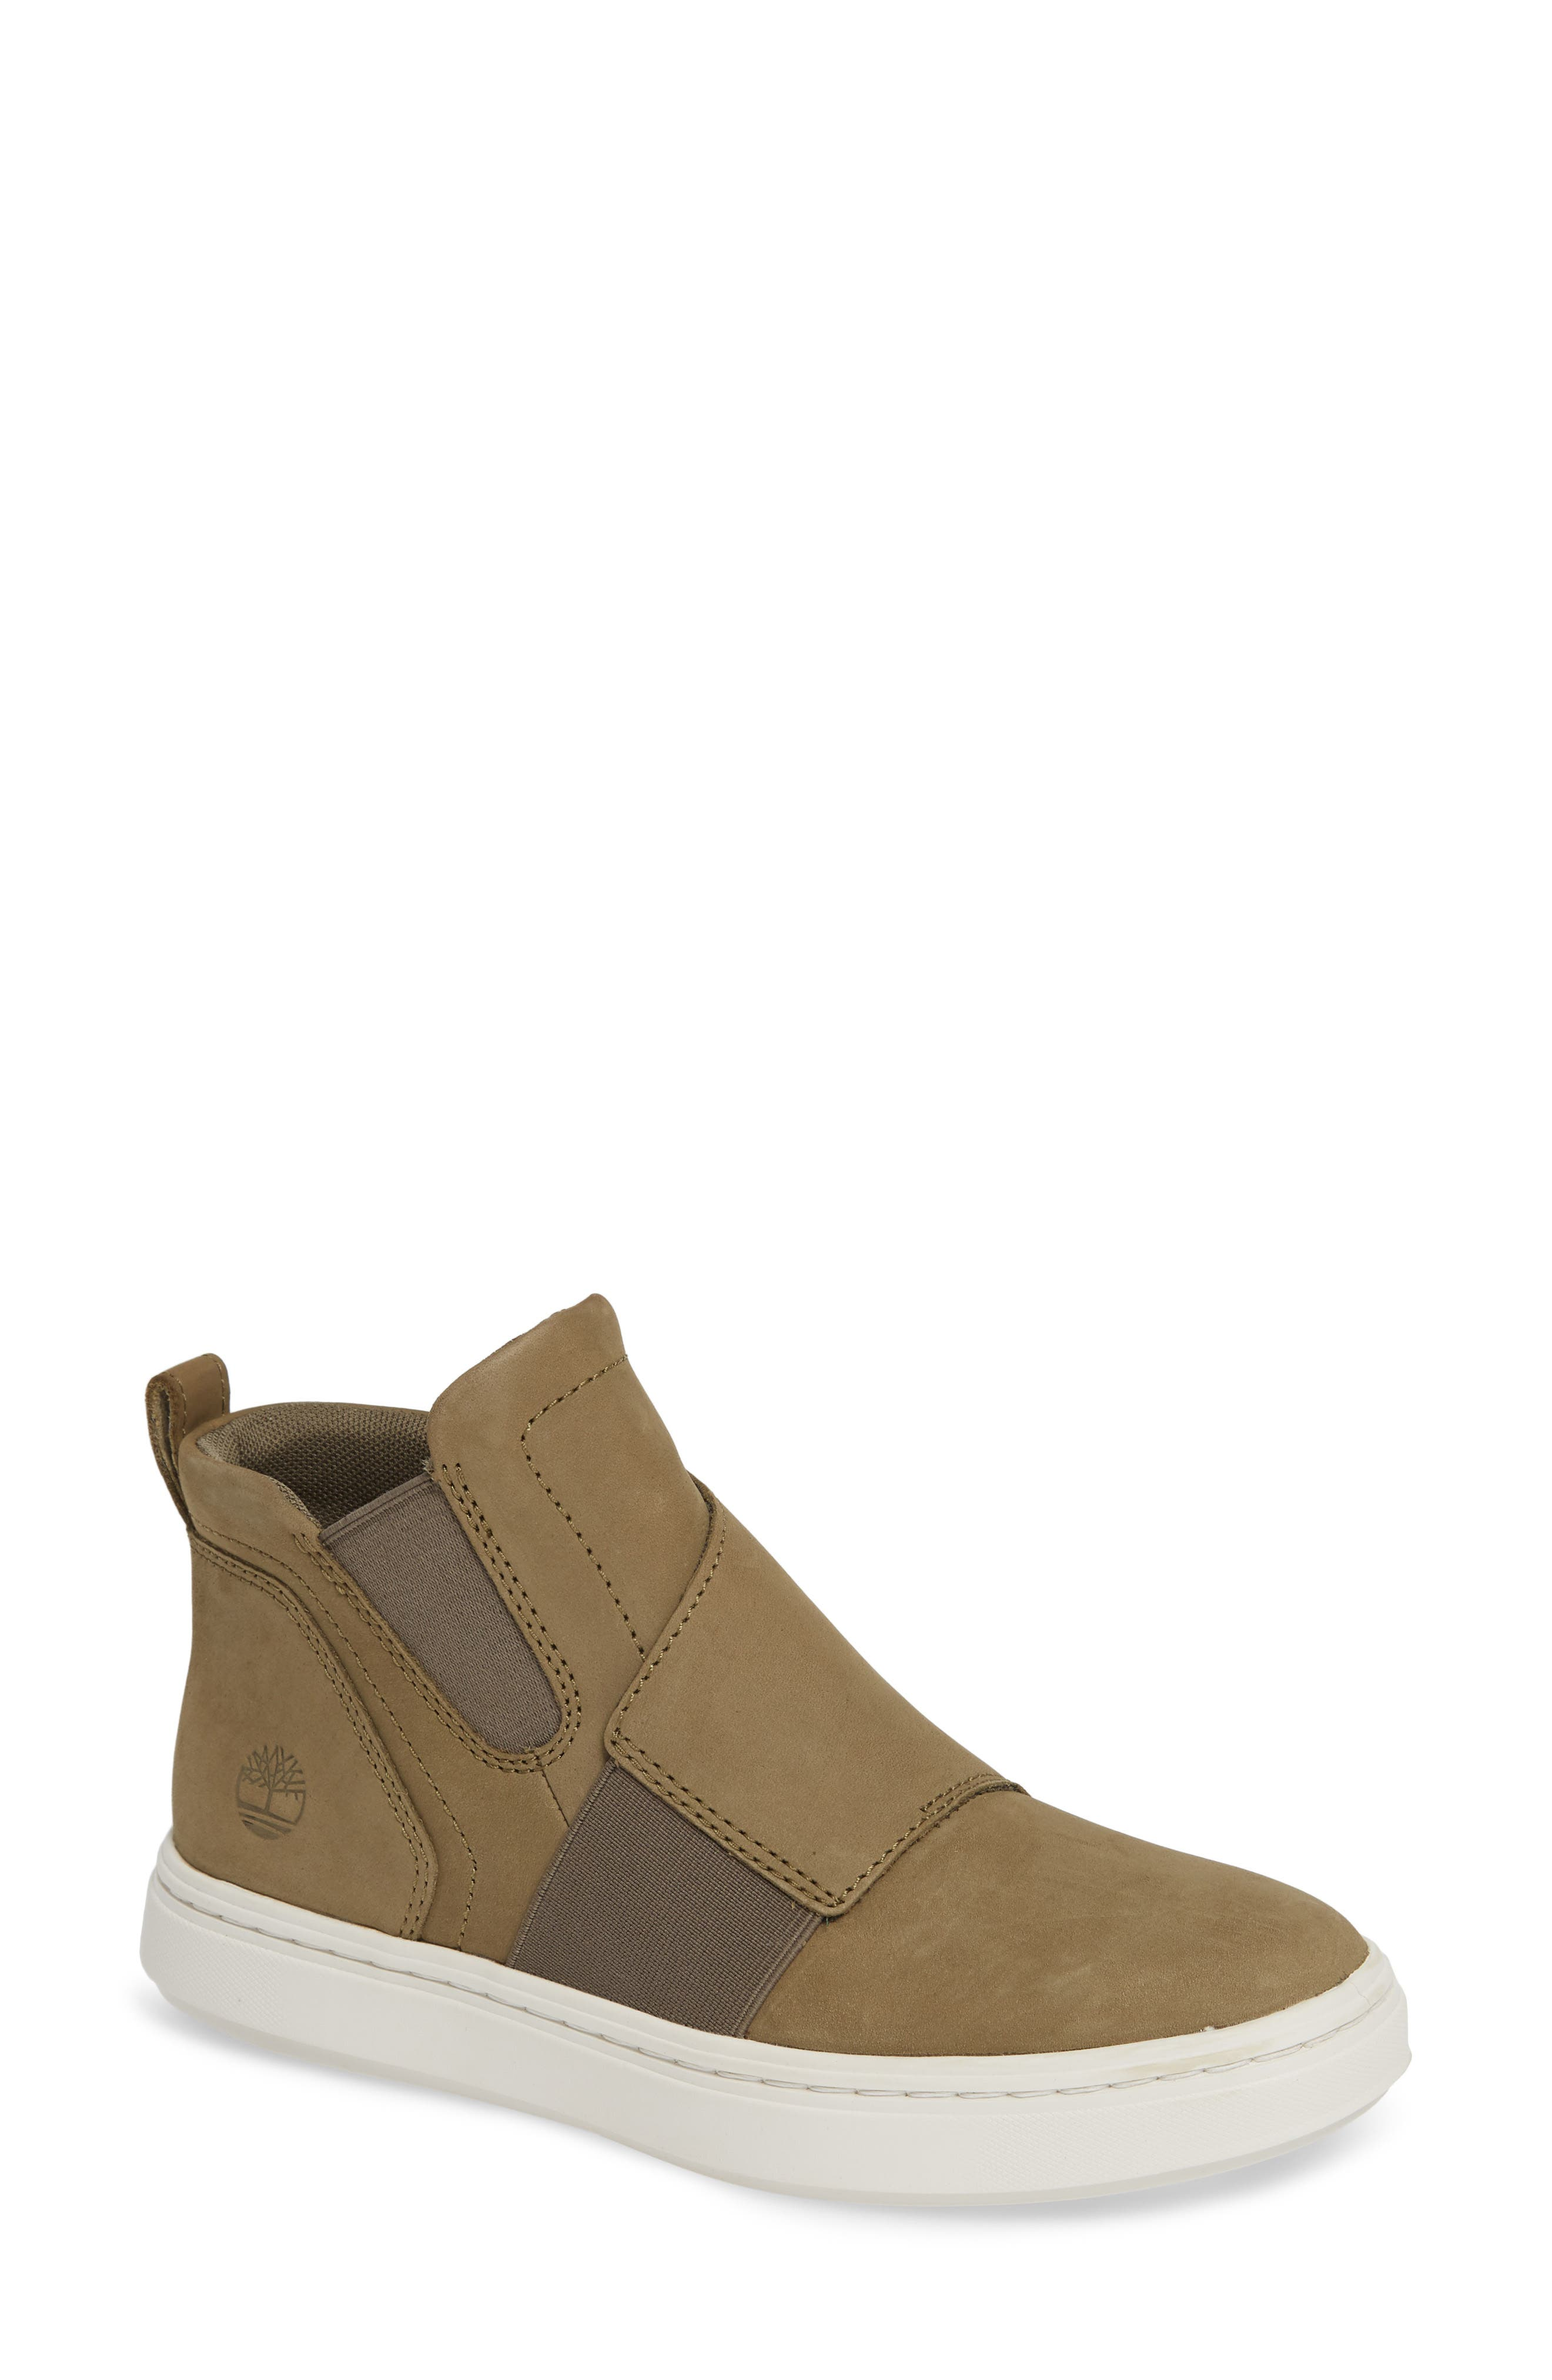 Londyn Chelsea Sneaker Boot,                         Main,                         color, 330